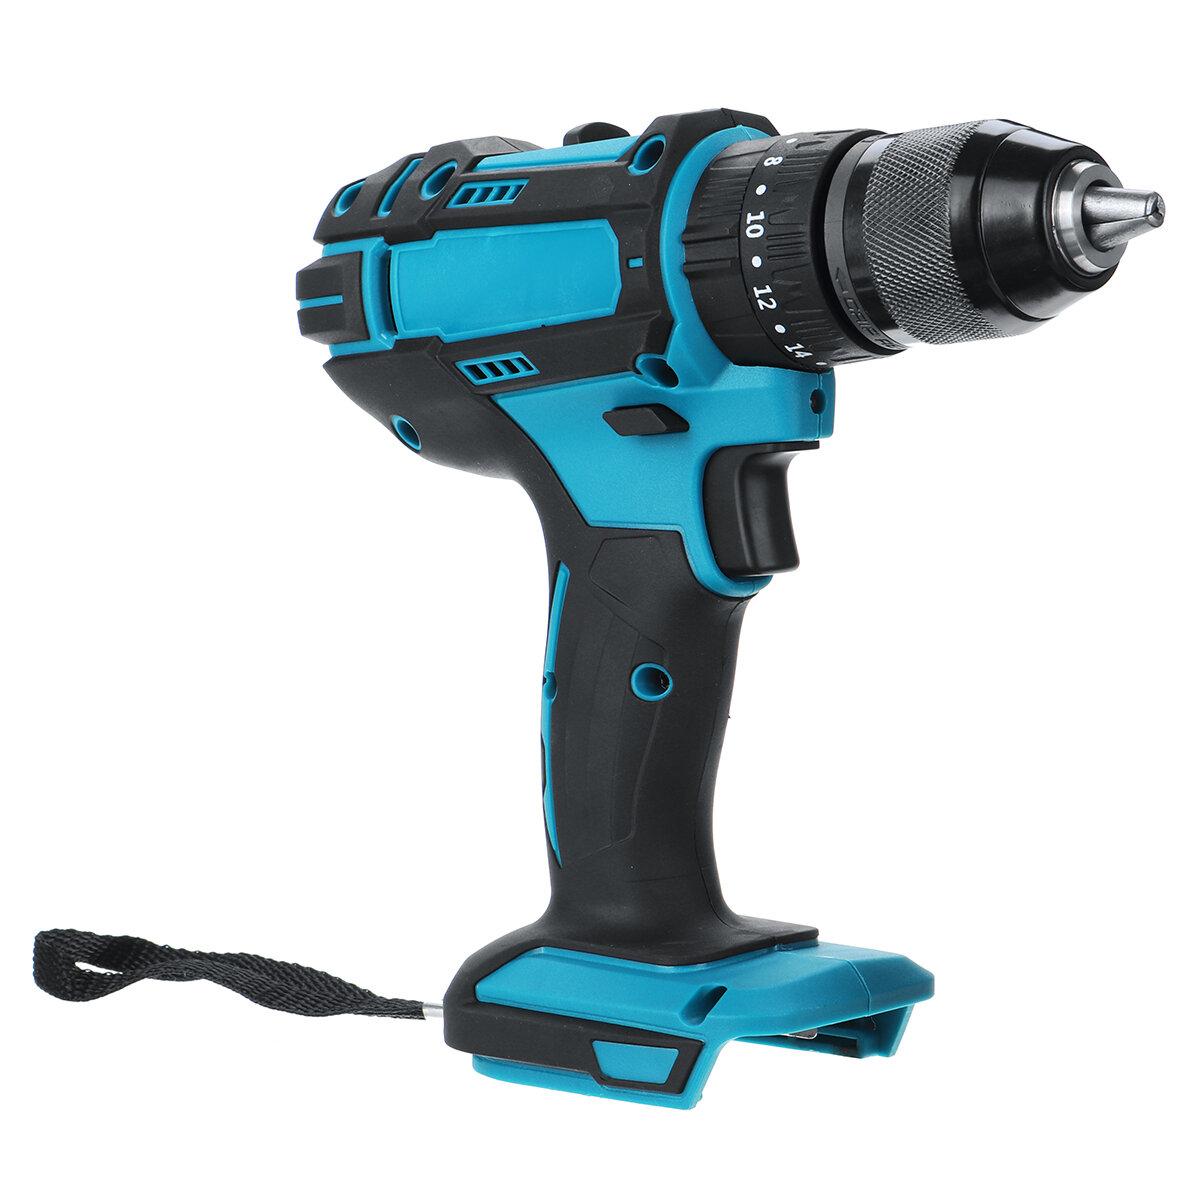 10mm Chuck Brushless Impact Drill 350N.m Cordless Electric Drill For Makita 18V Battery 4000RPM LED Light Power Drills - 5